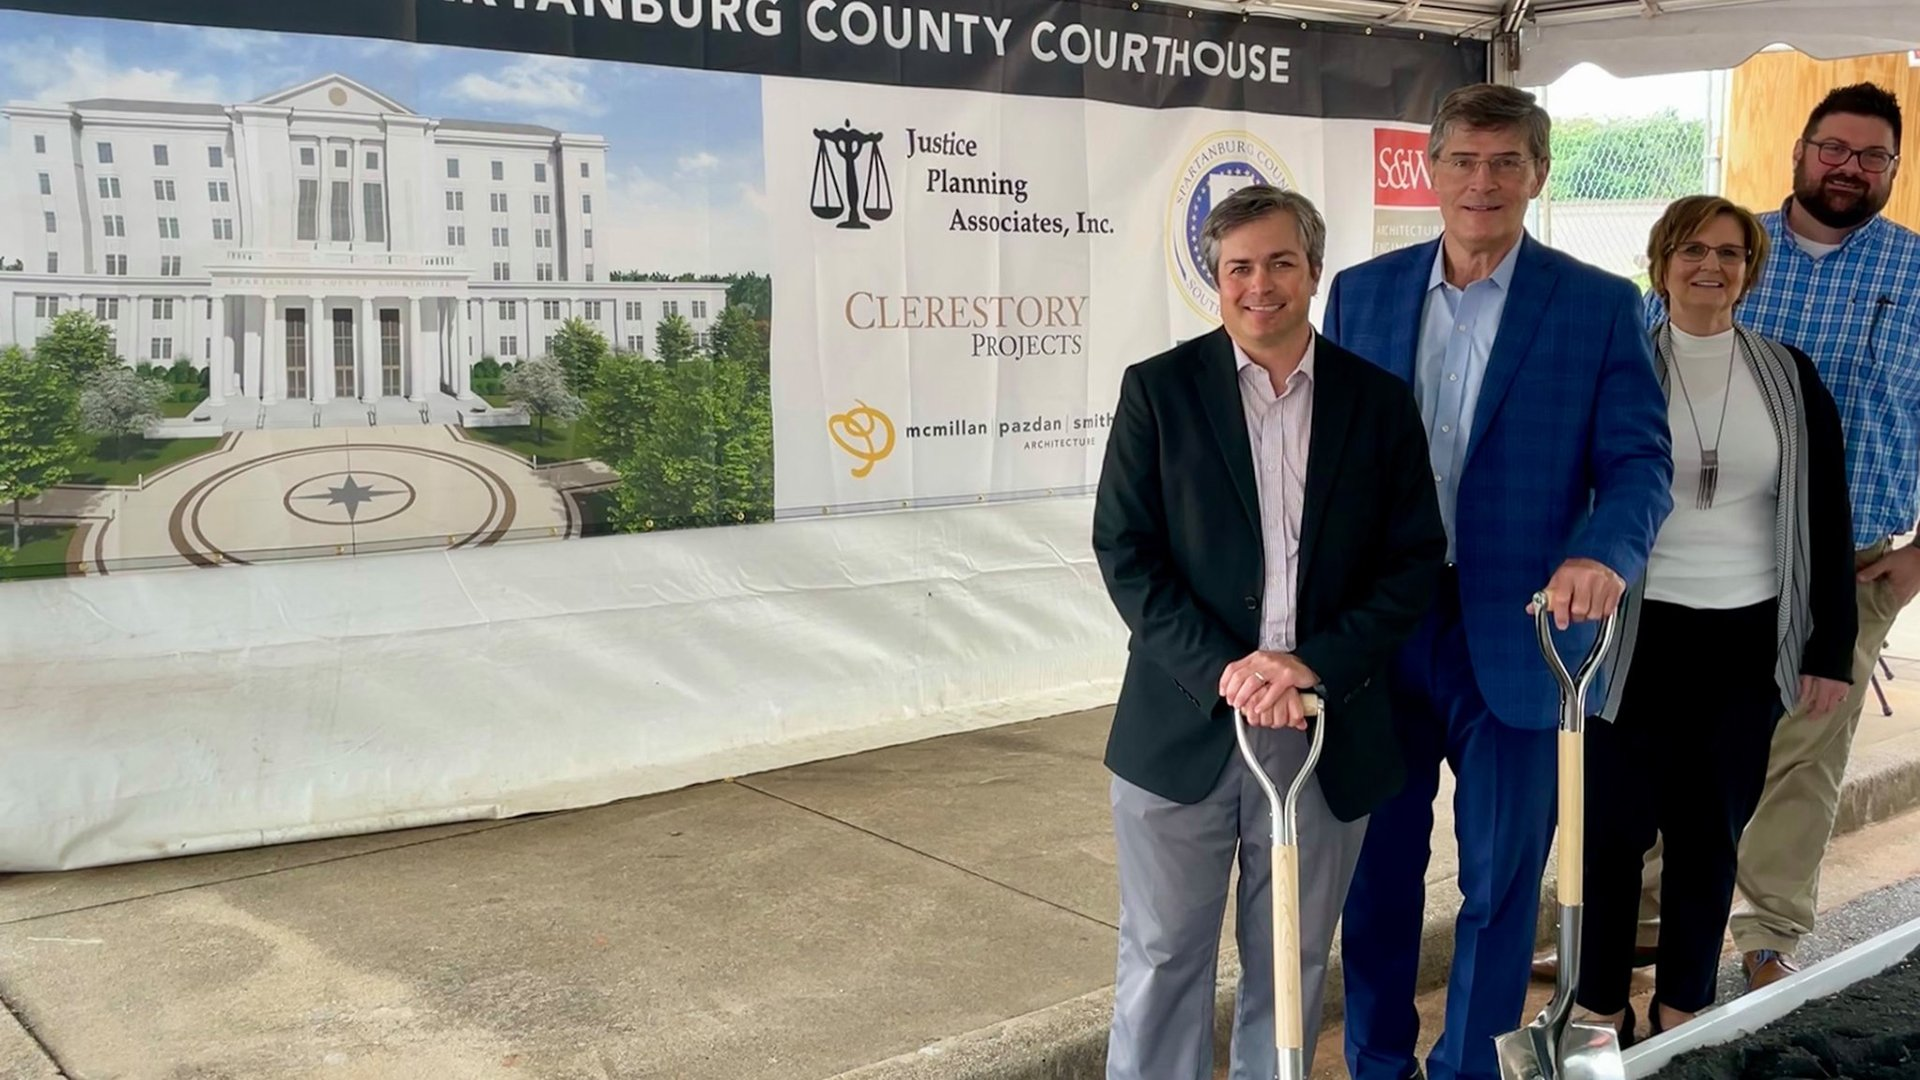 Spartanburg County and Partners Celebrate New Judicial Center Groundbreaking